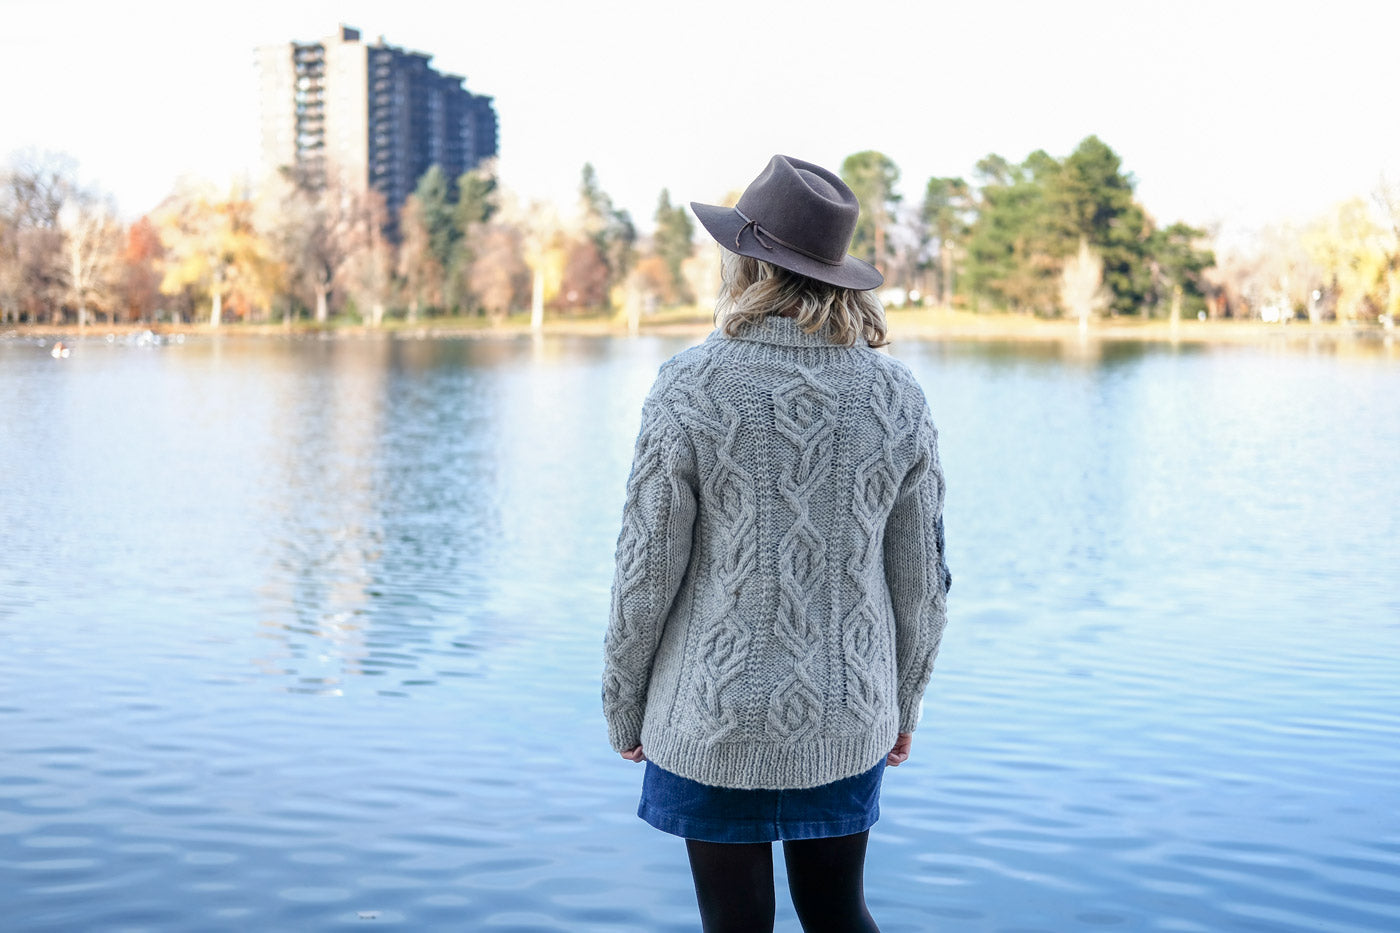 Amber looking out over a lake showing off the back side of her cabled cardigan